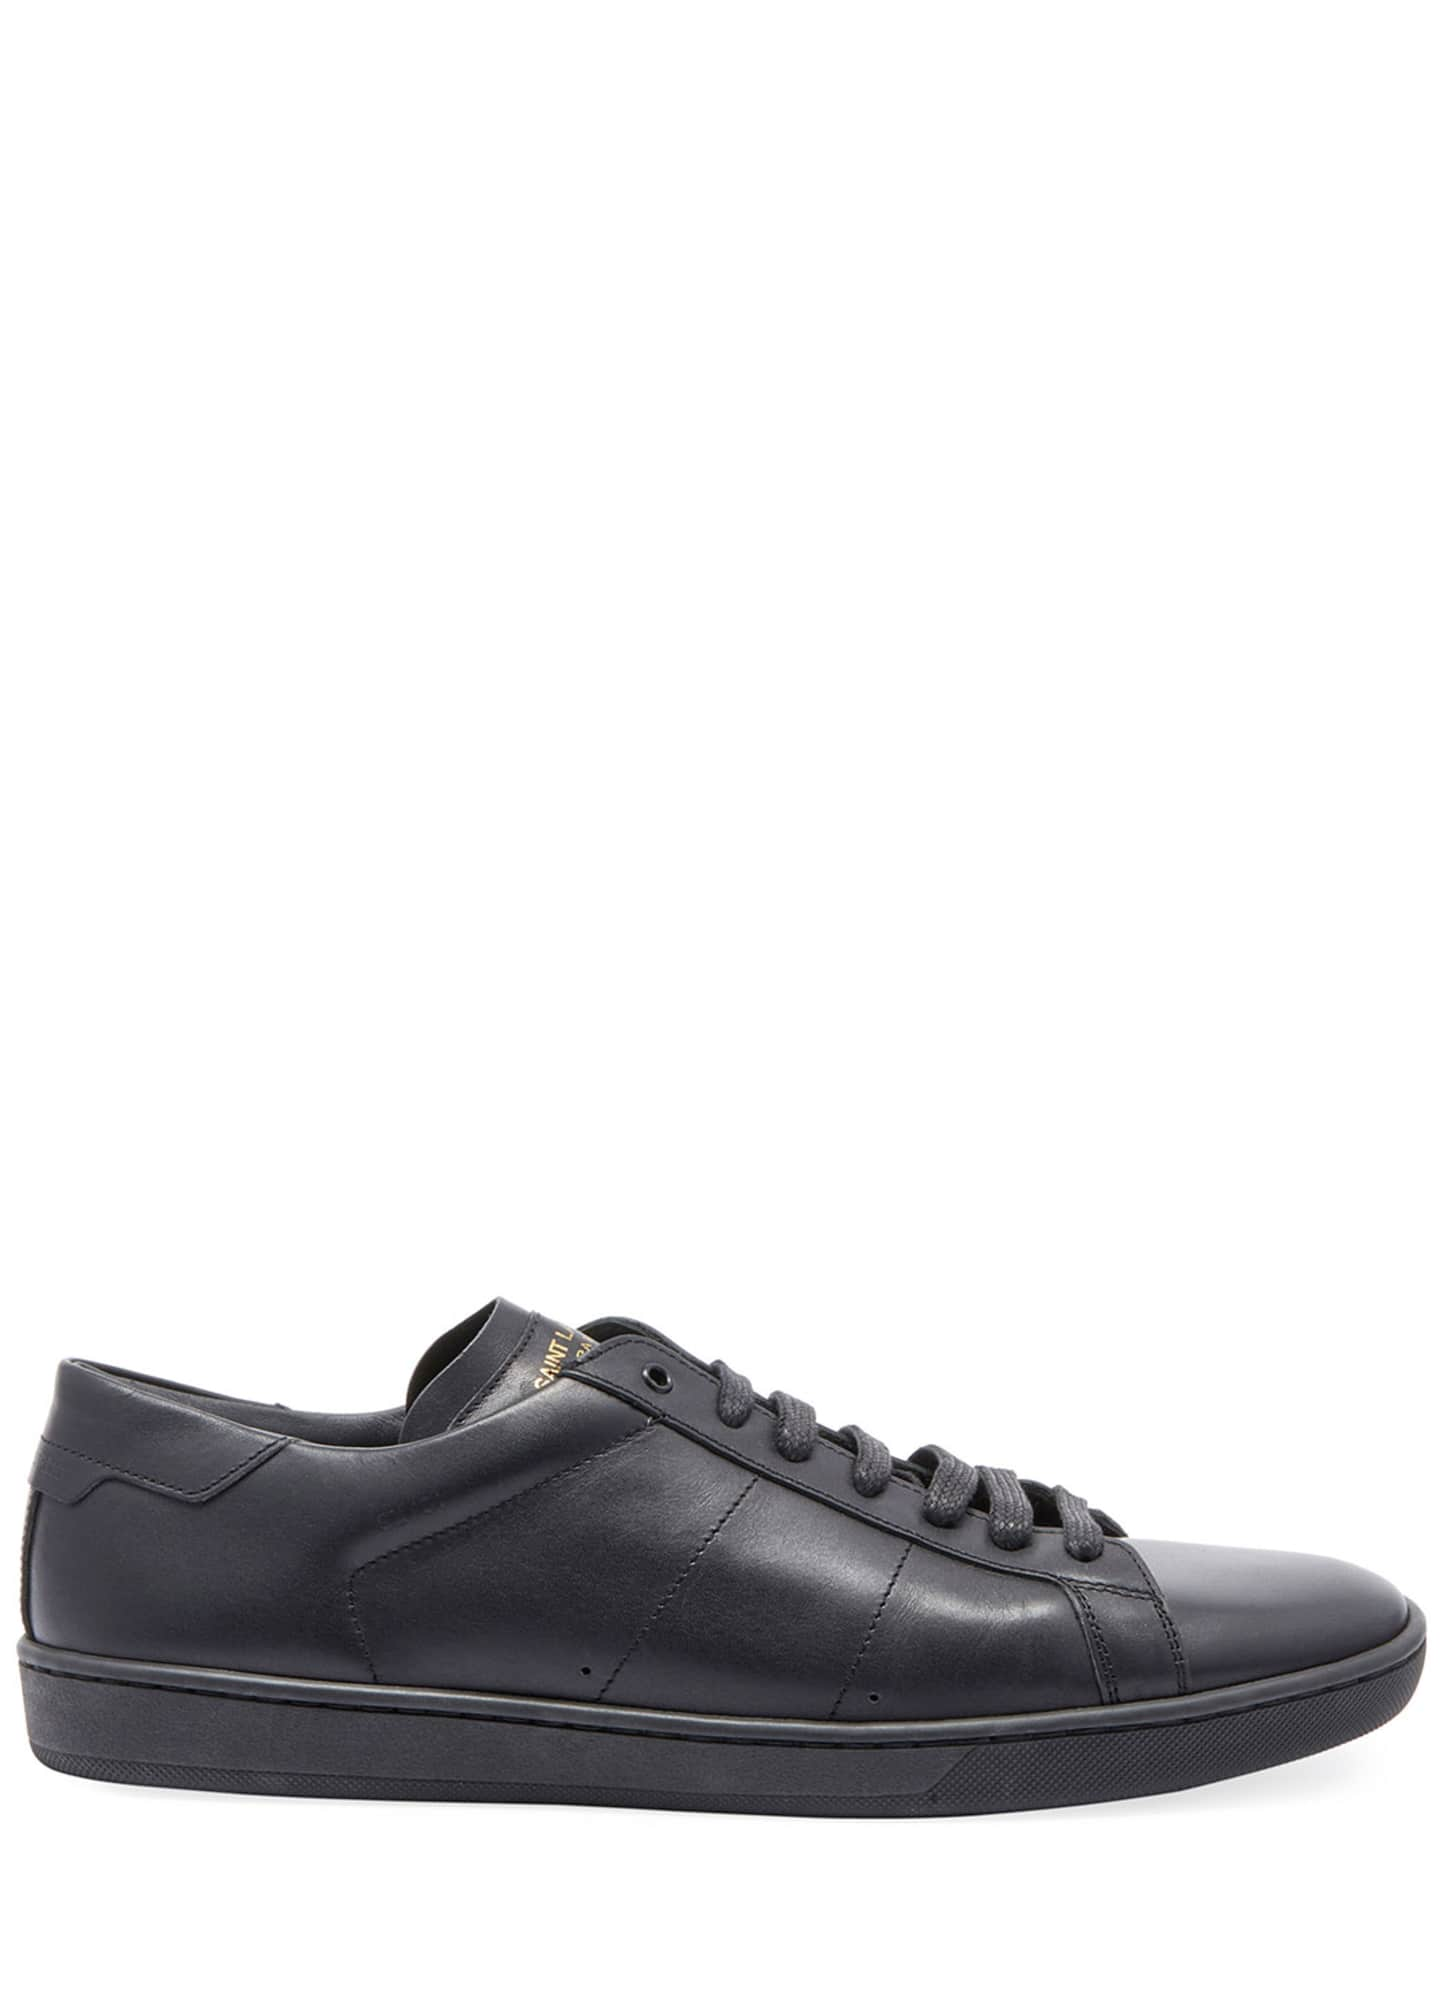 Image 2 of 3: Men's SL01 Leather Low-Top Sneakers